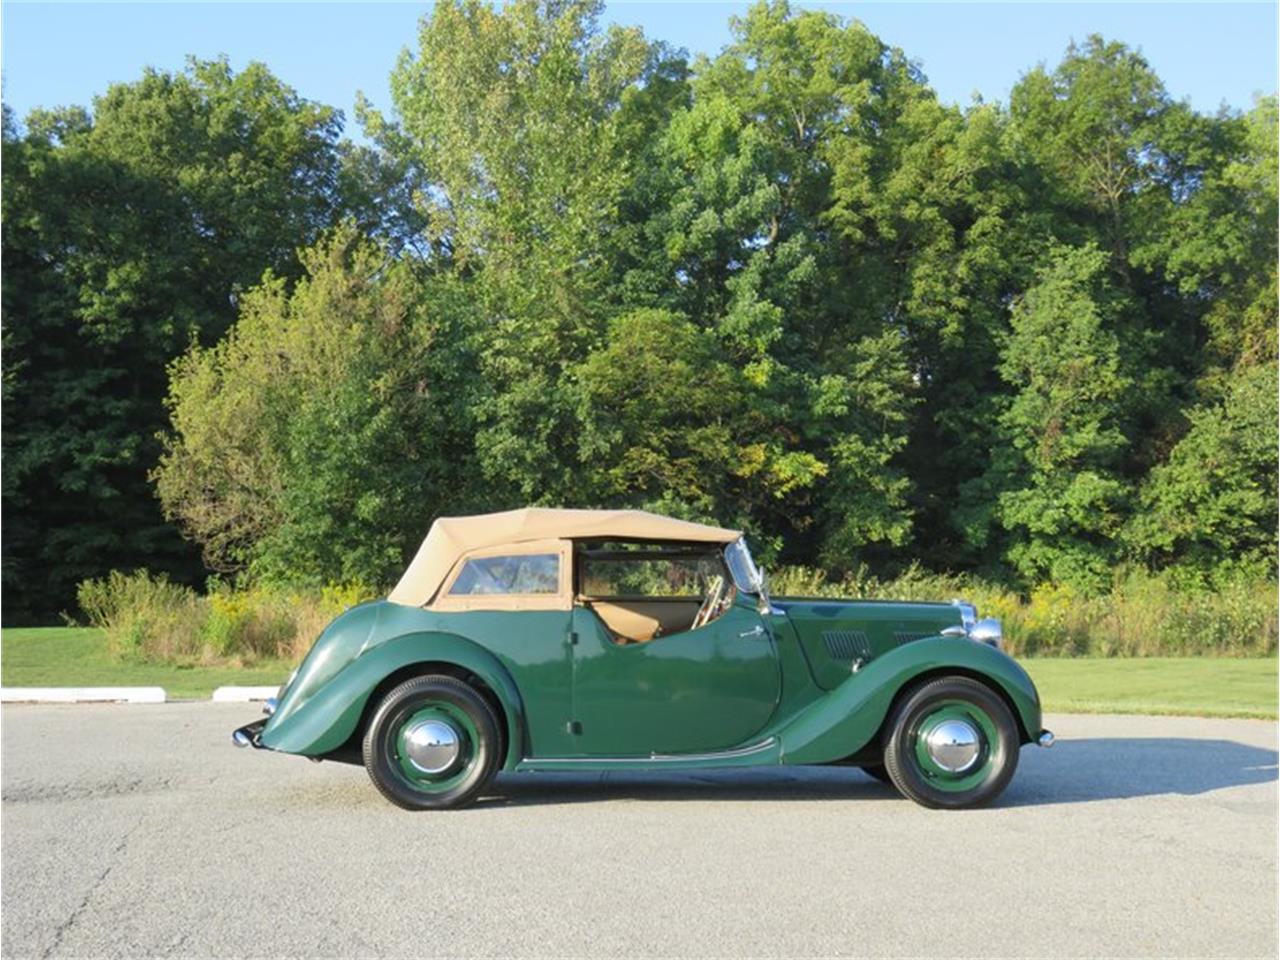 Large Picture of Classic '50 MG Series YT Auction Vehicle Offered by Earlywine Auctions - R37M